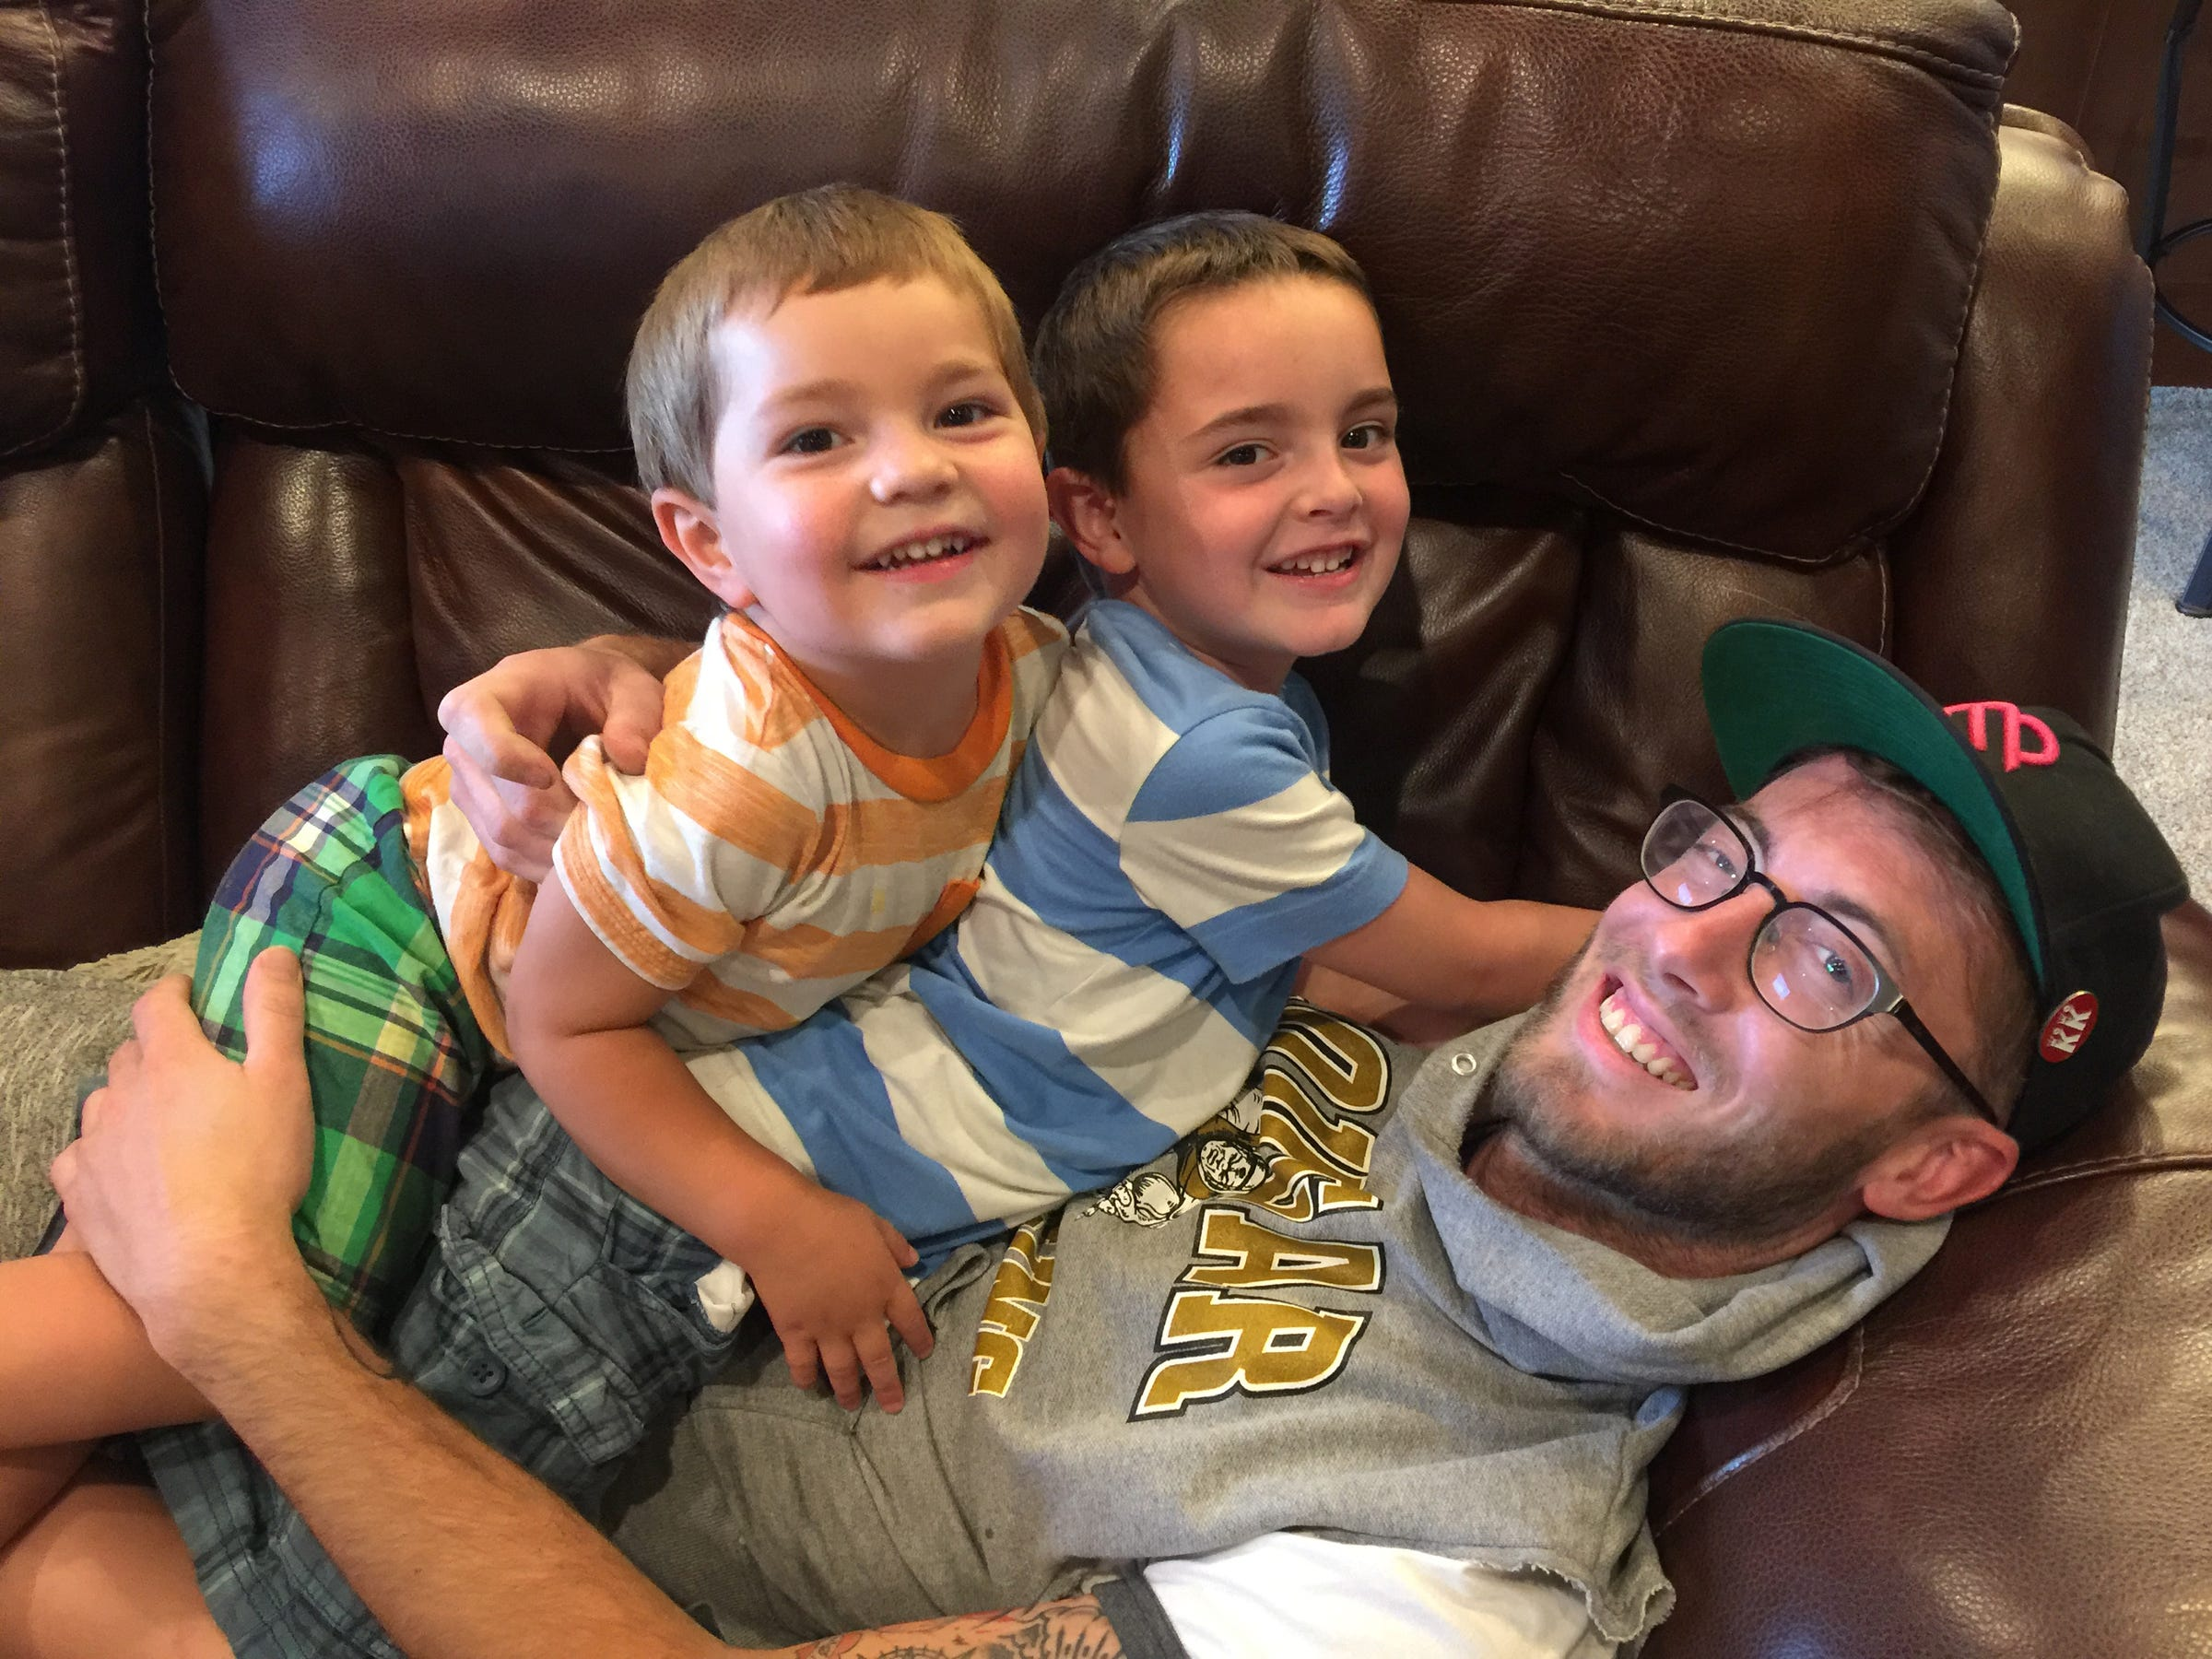 A family photo shows Austin Burnett with his nephews  Jensen, 3, left, and Jackson Rose, 5, in Albuquerque, New Mexico in July, 2018. Burnett, who prided himself as their uncle, died in his Wyandotte apartment on April 28, 2020 of an overdose.